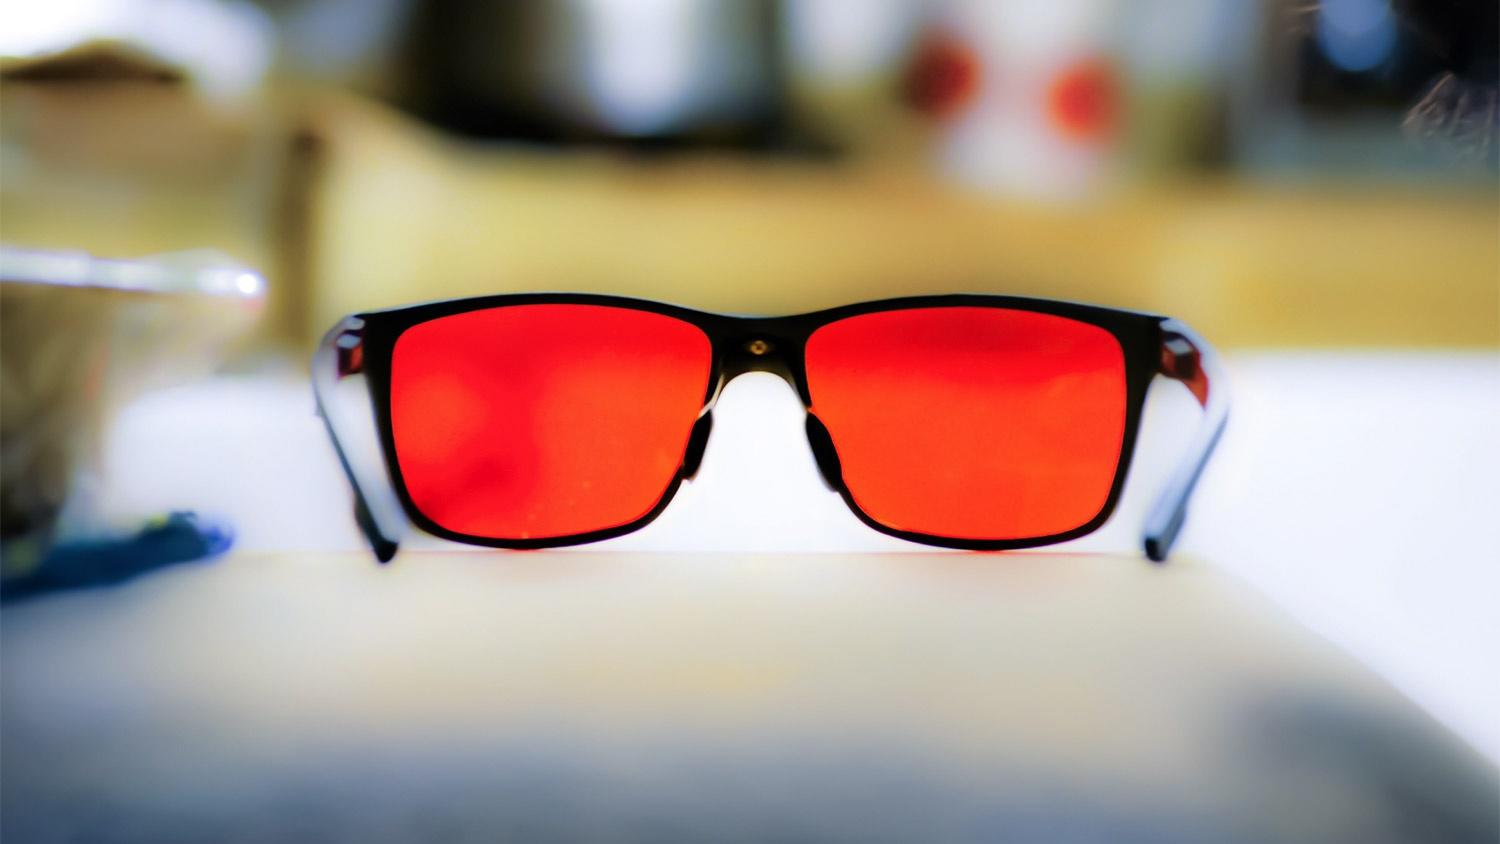 Awesome tech you can't buy yet: Graffiti printing, smarter shades, a caffeine cuff